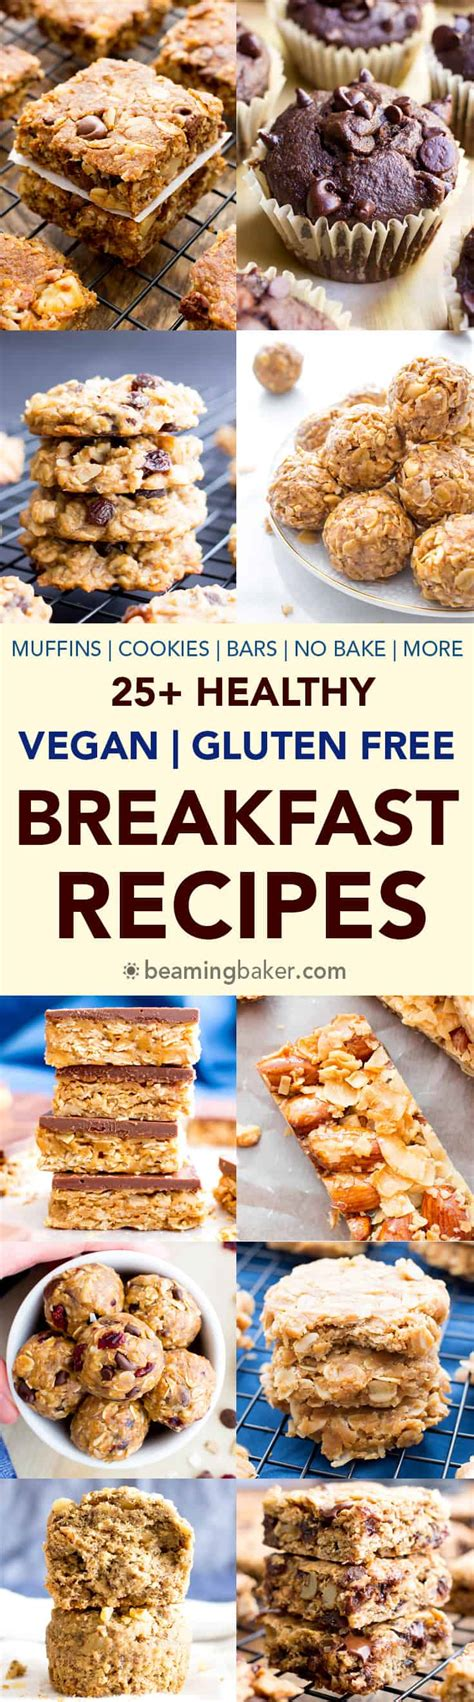 gluten free vegan breakfast recipes 25 healthy gluten free breakfast recipes vegan gf